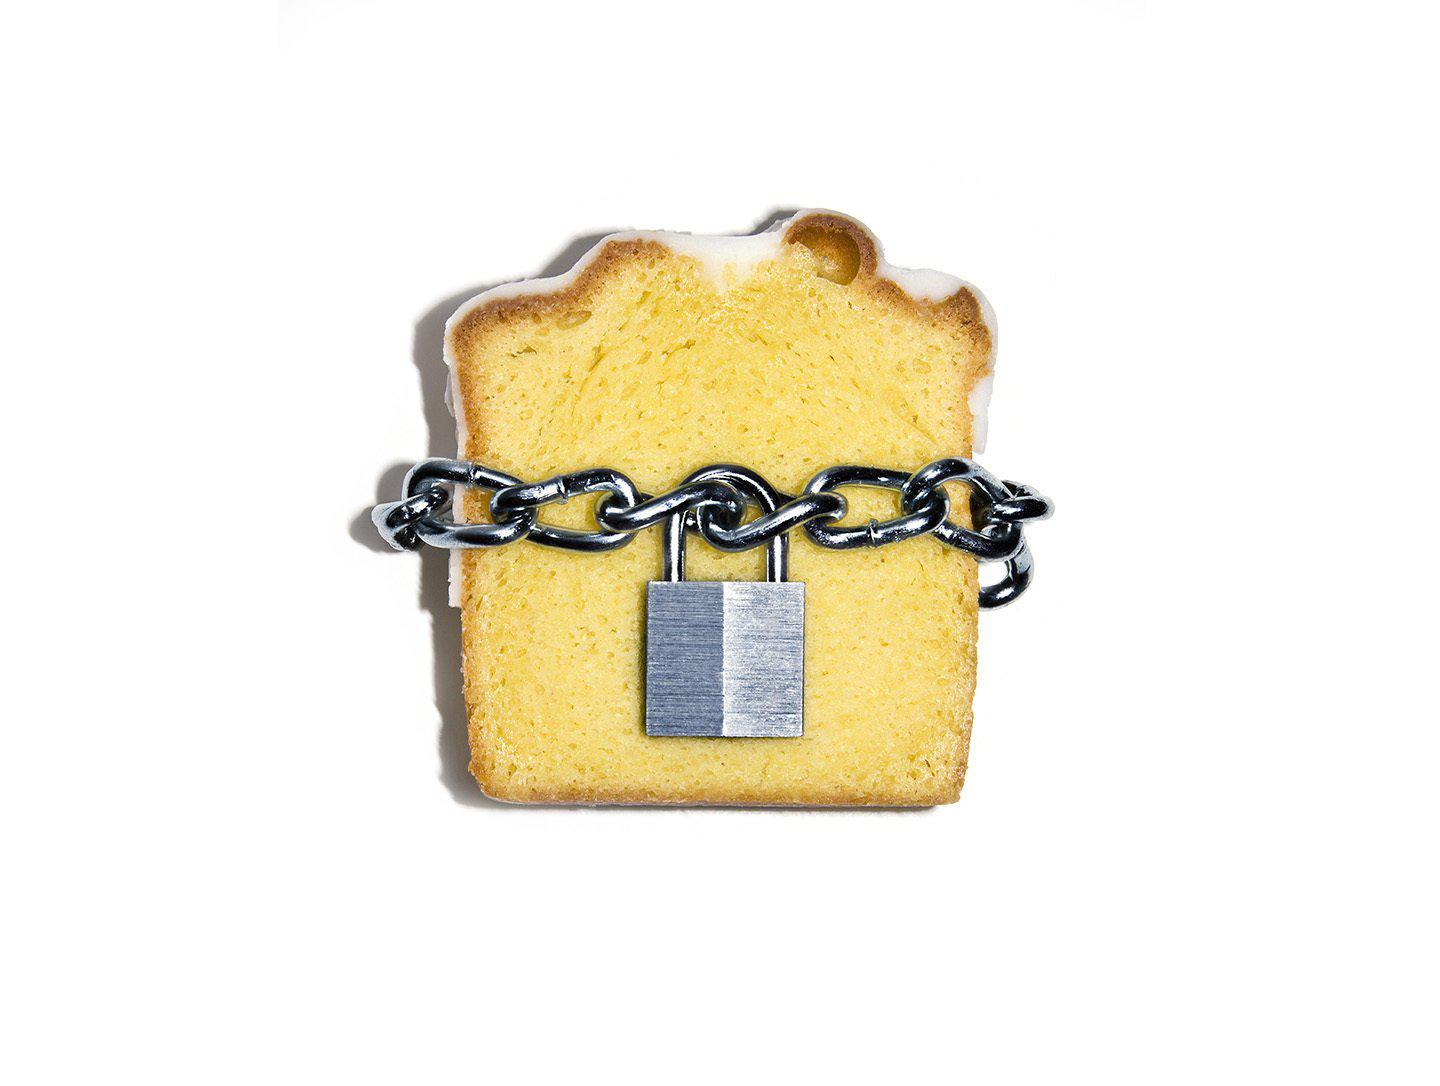 Slice of pound cake with lock and chain